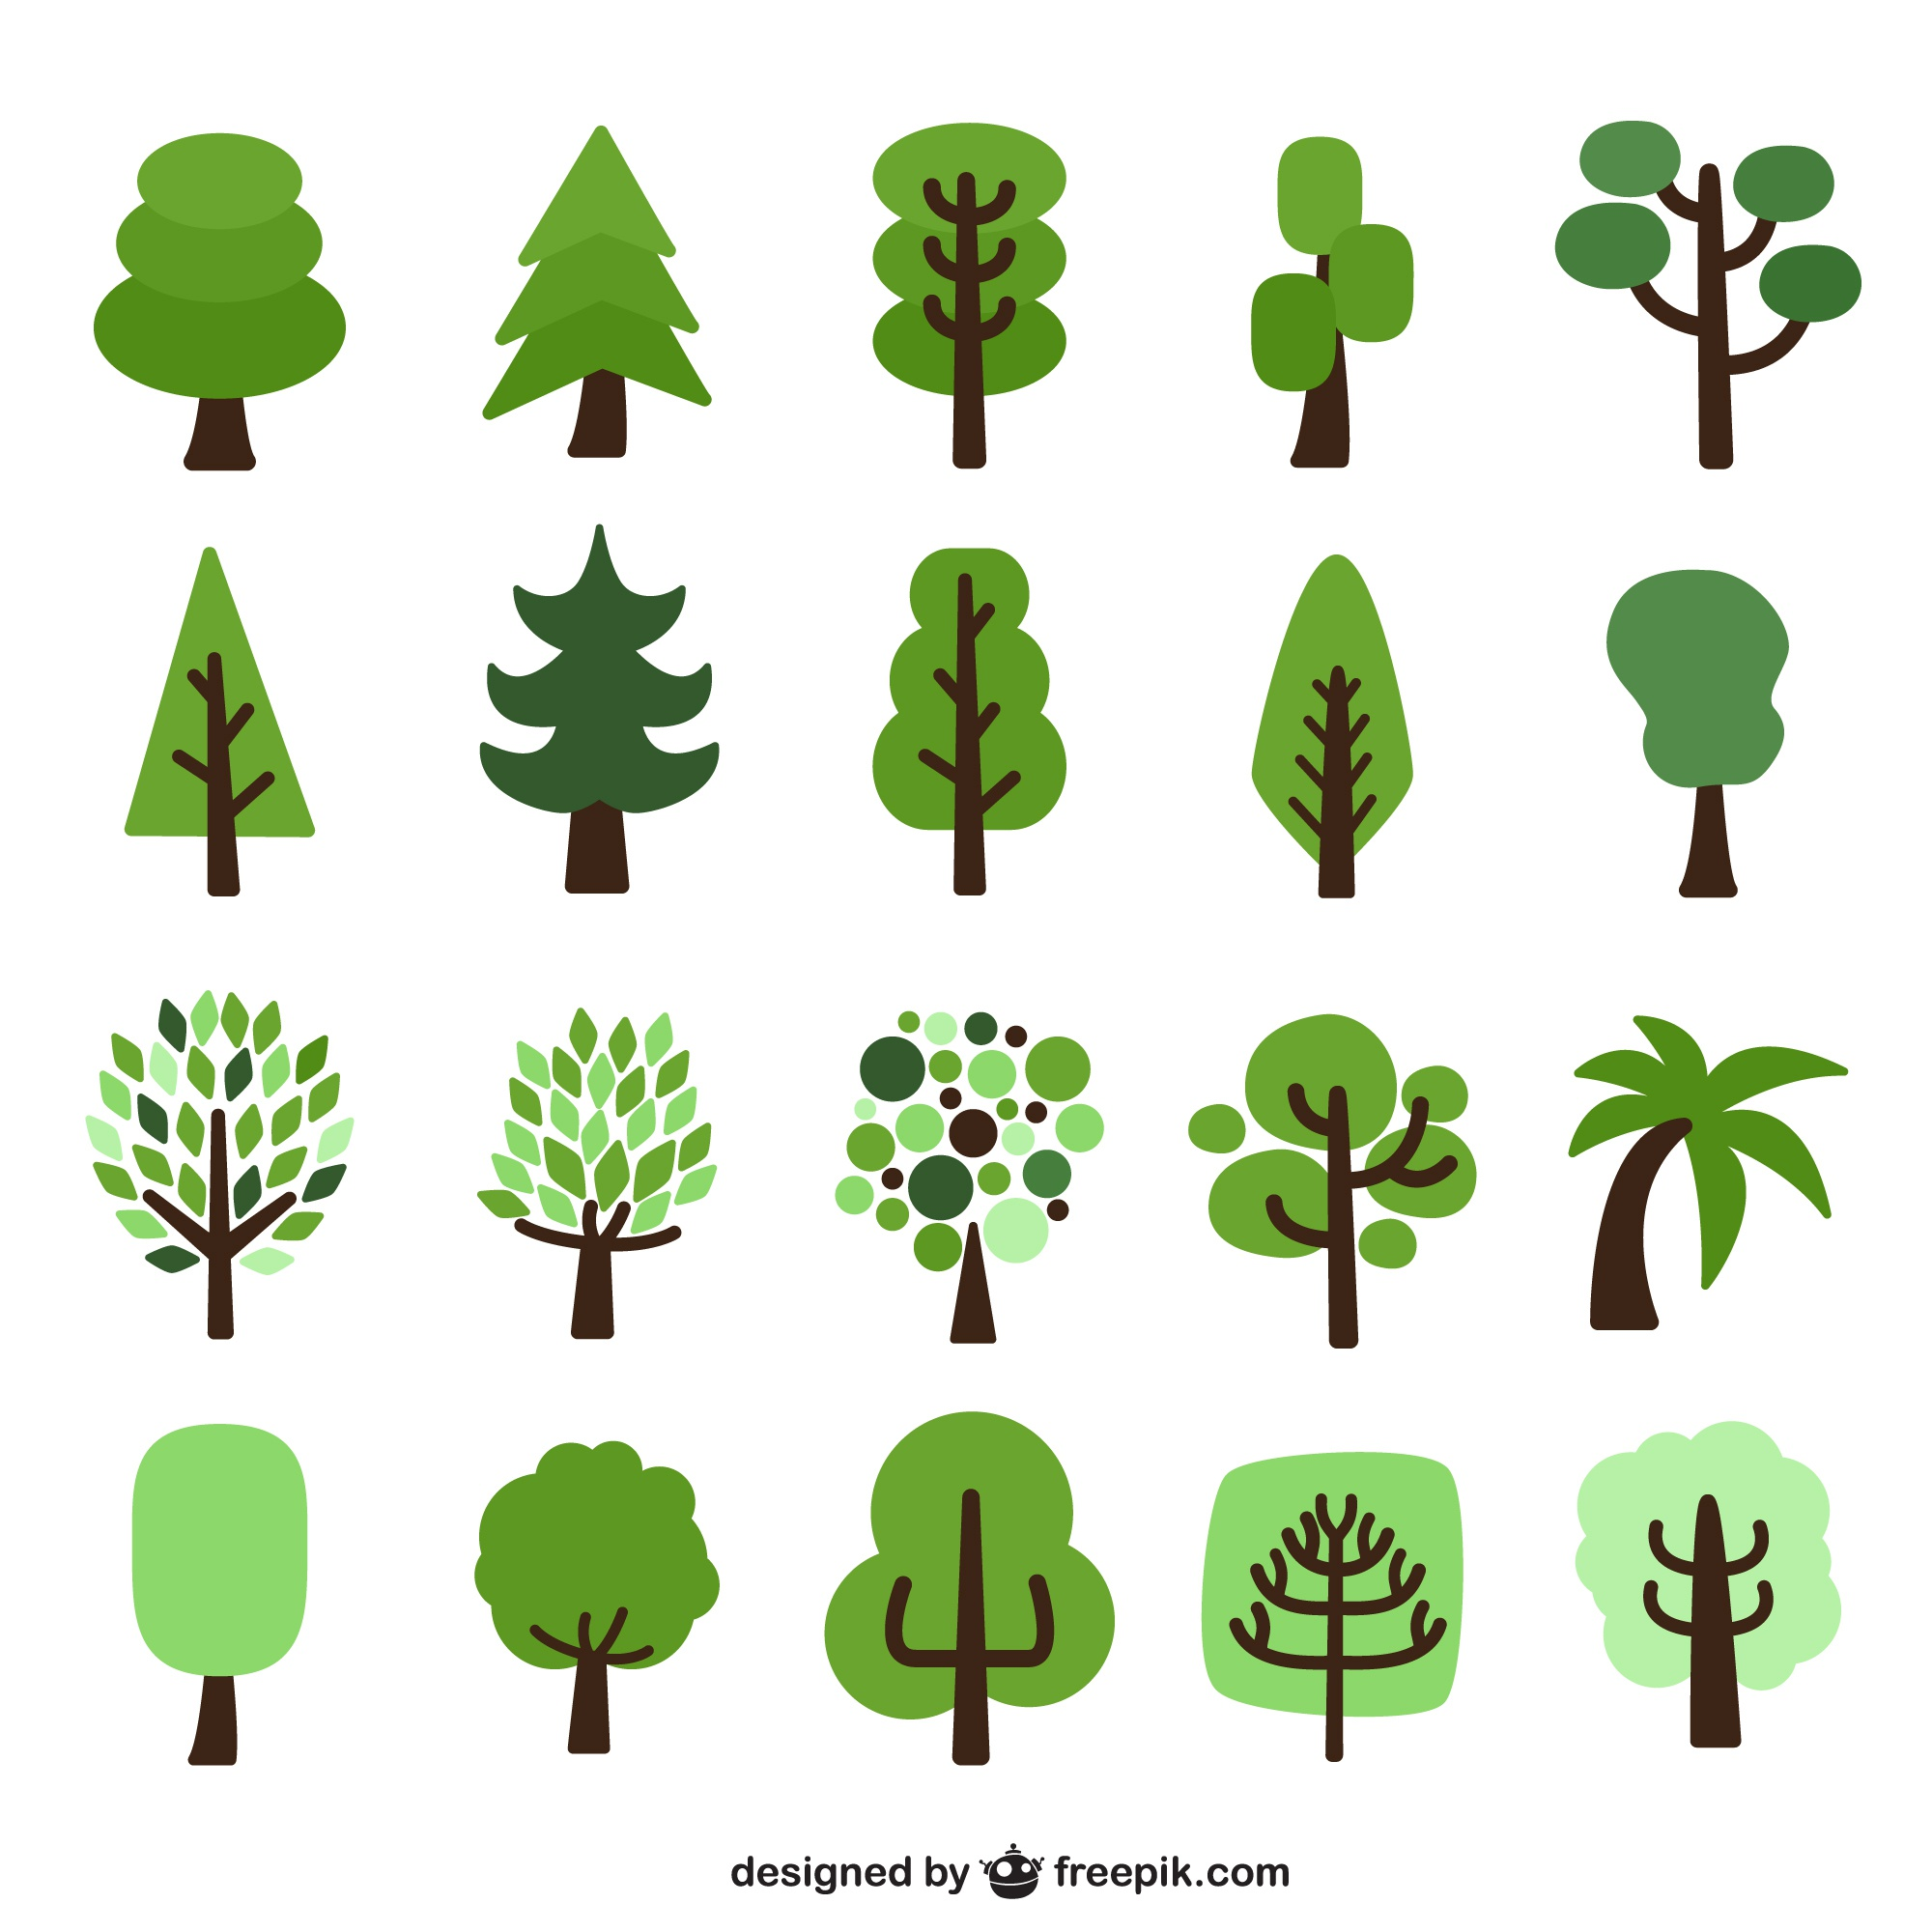 Flat trees cartoons pack